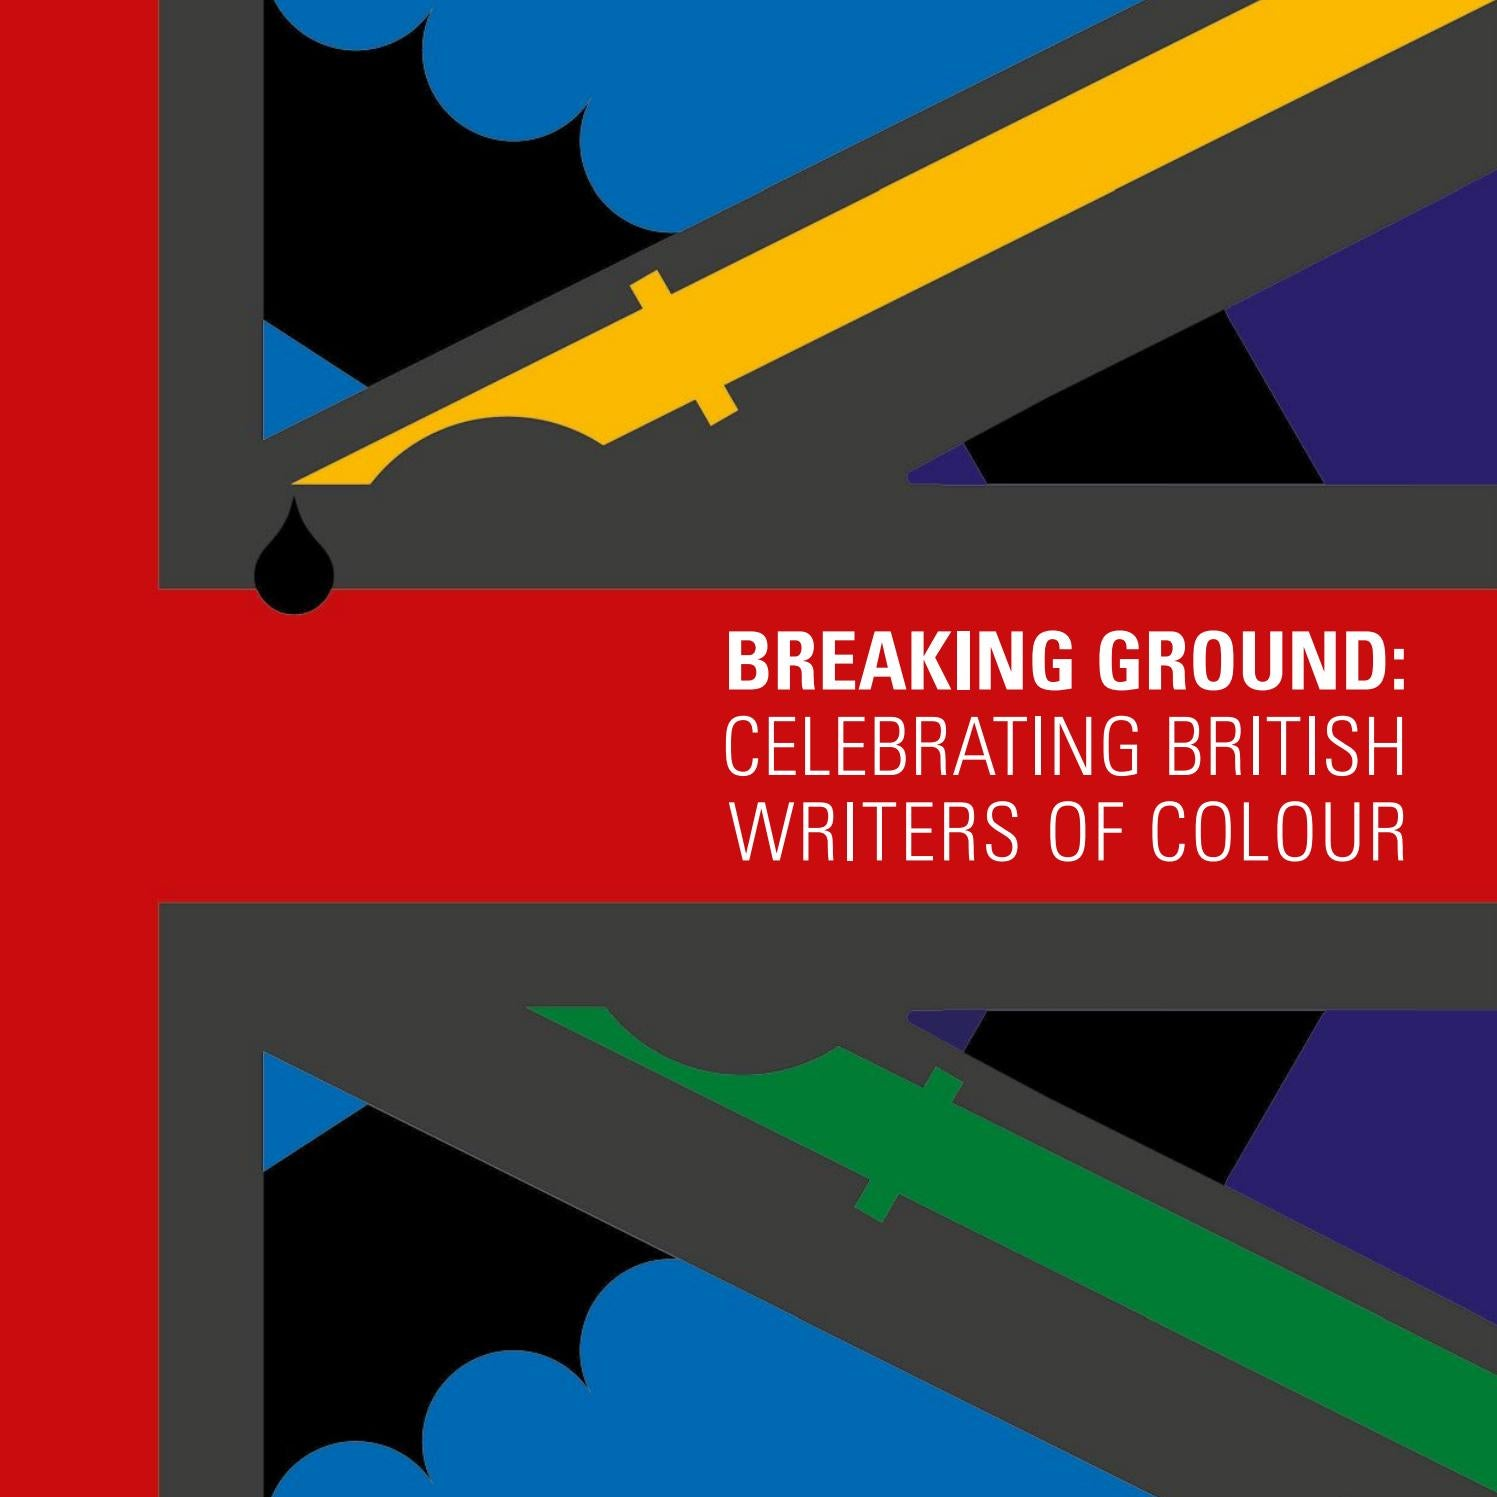 Breaking Ground: Celebrating British Writers of Colour by